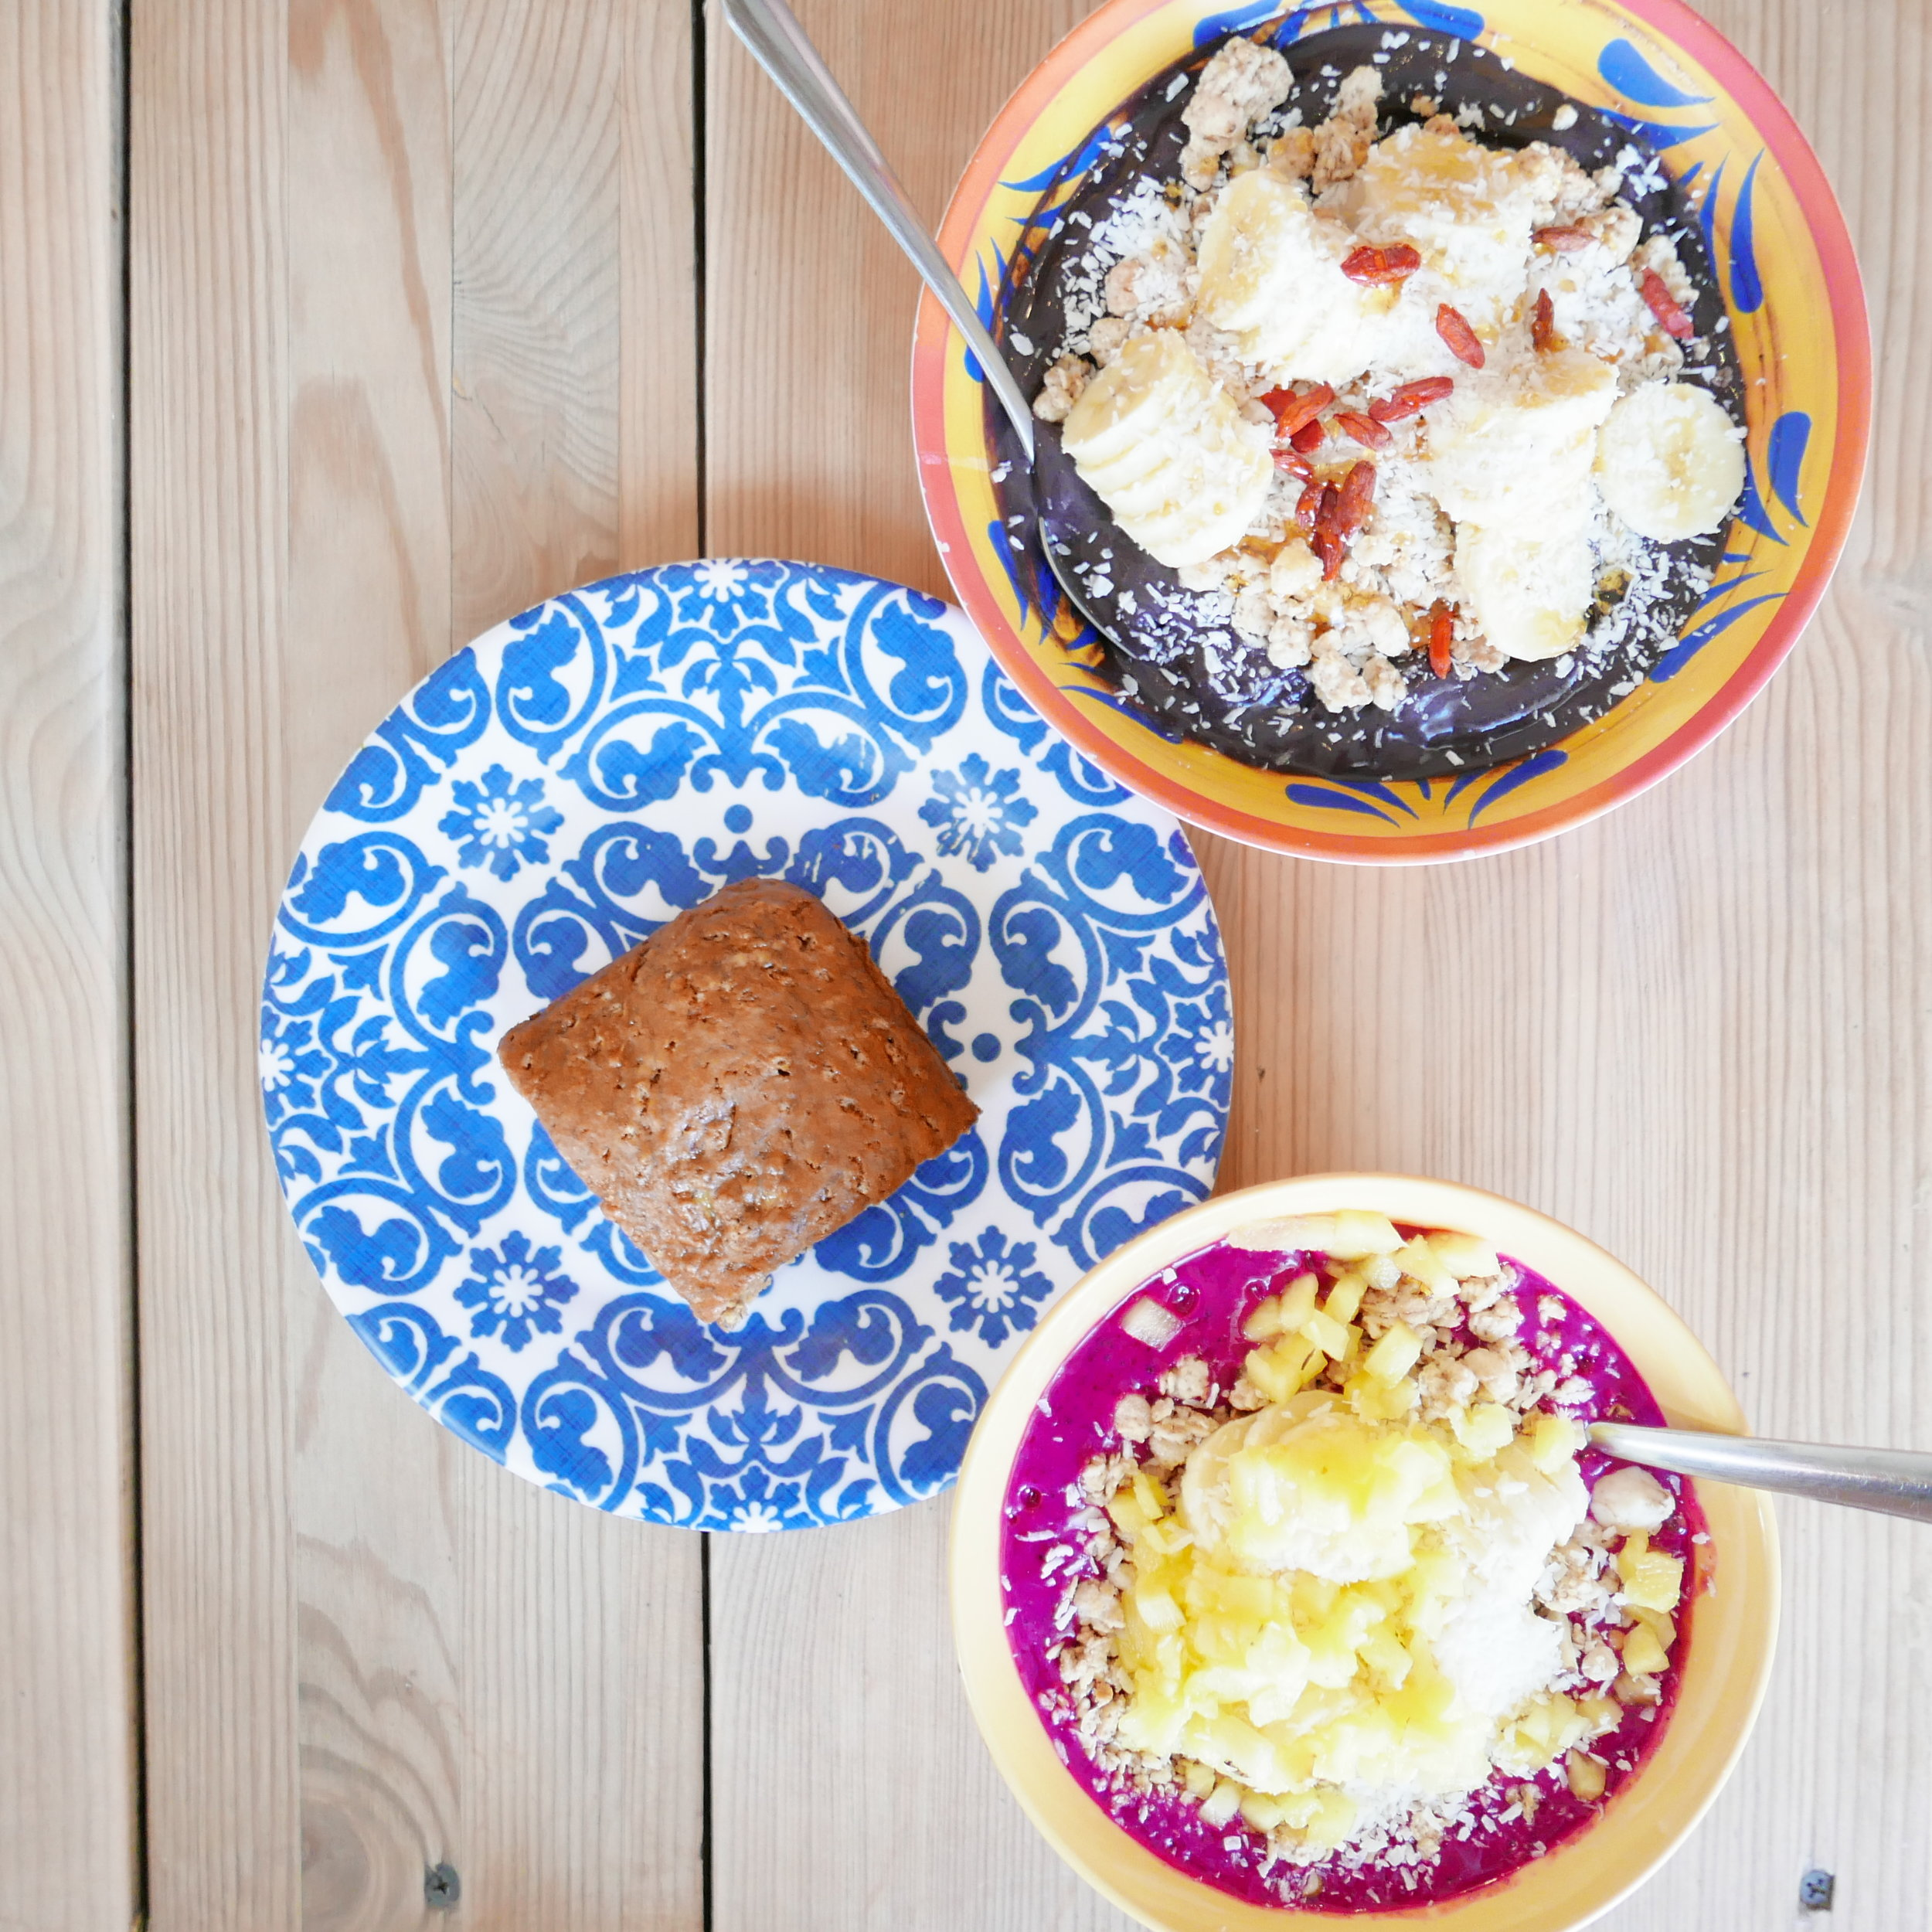 Top: Superfood Bowl - Raw acai blended with banana, spirulina and maca topped with granola, sliced banana, coconut shavings, goji berries  Bottom: Dragon Bowl - Raw dragon fruit blended with banana. Topped with granola, sliced banana, pineapple and coconut shavings.